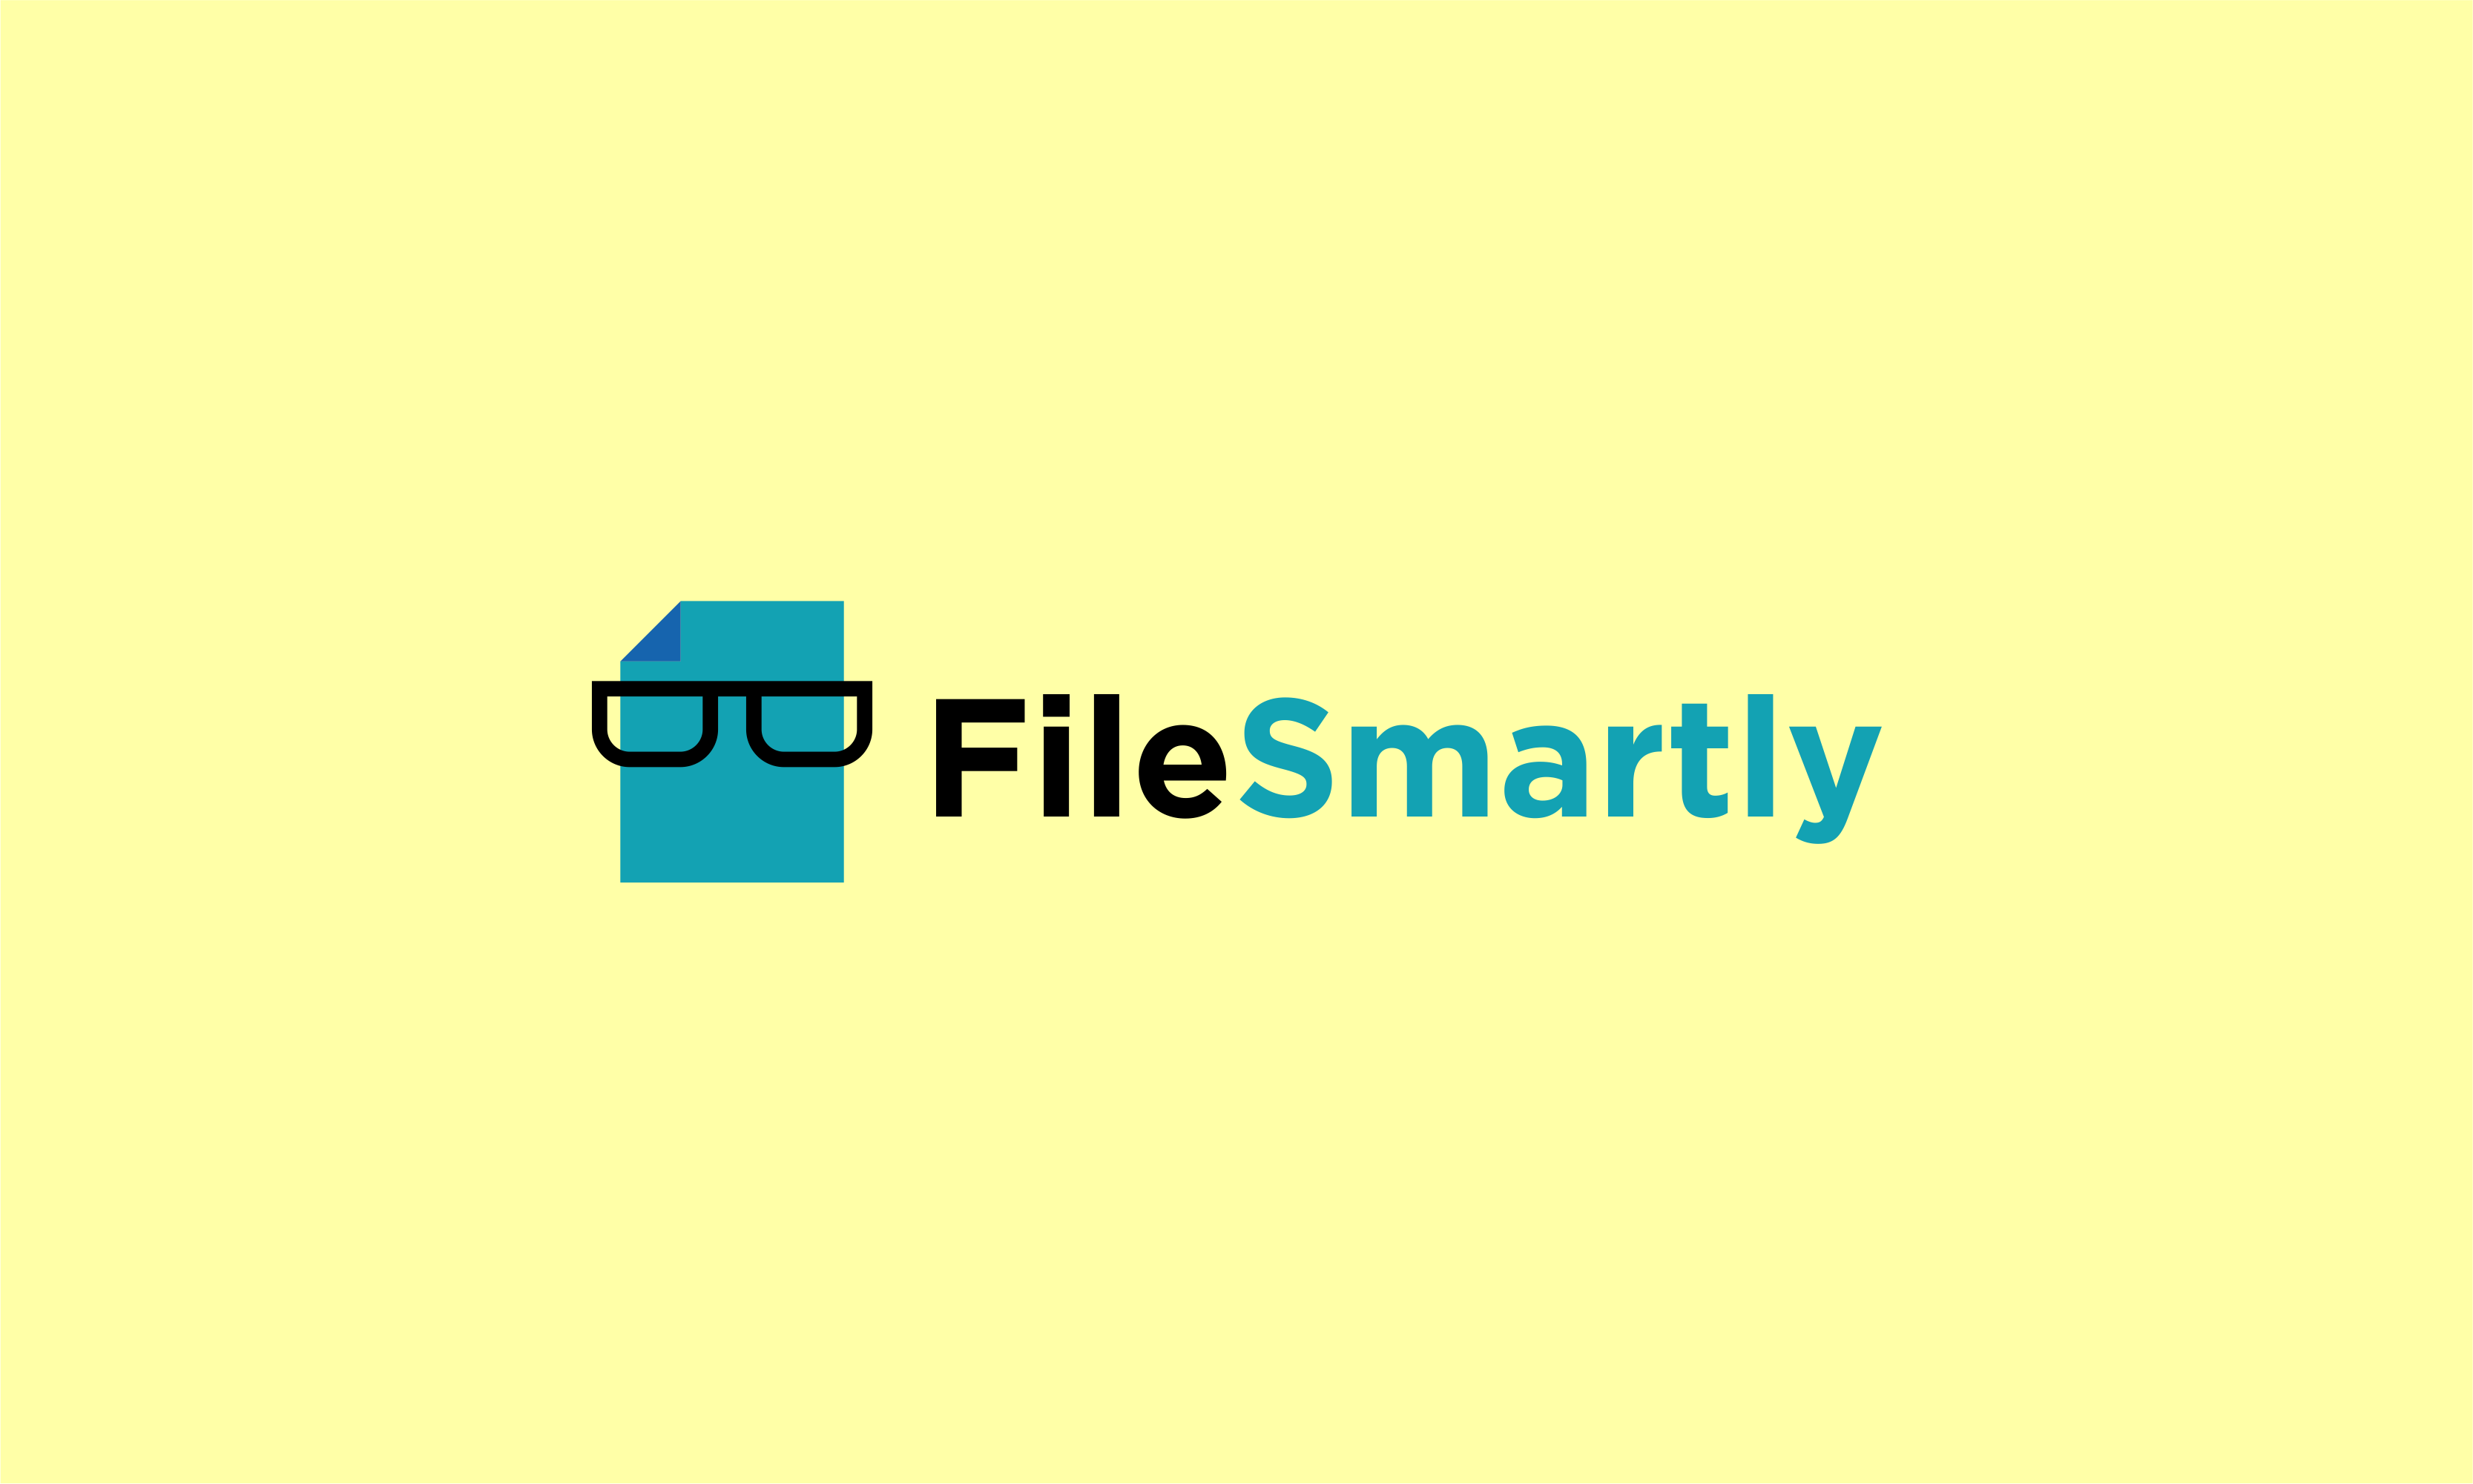 Filesmartly